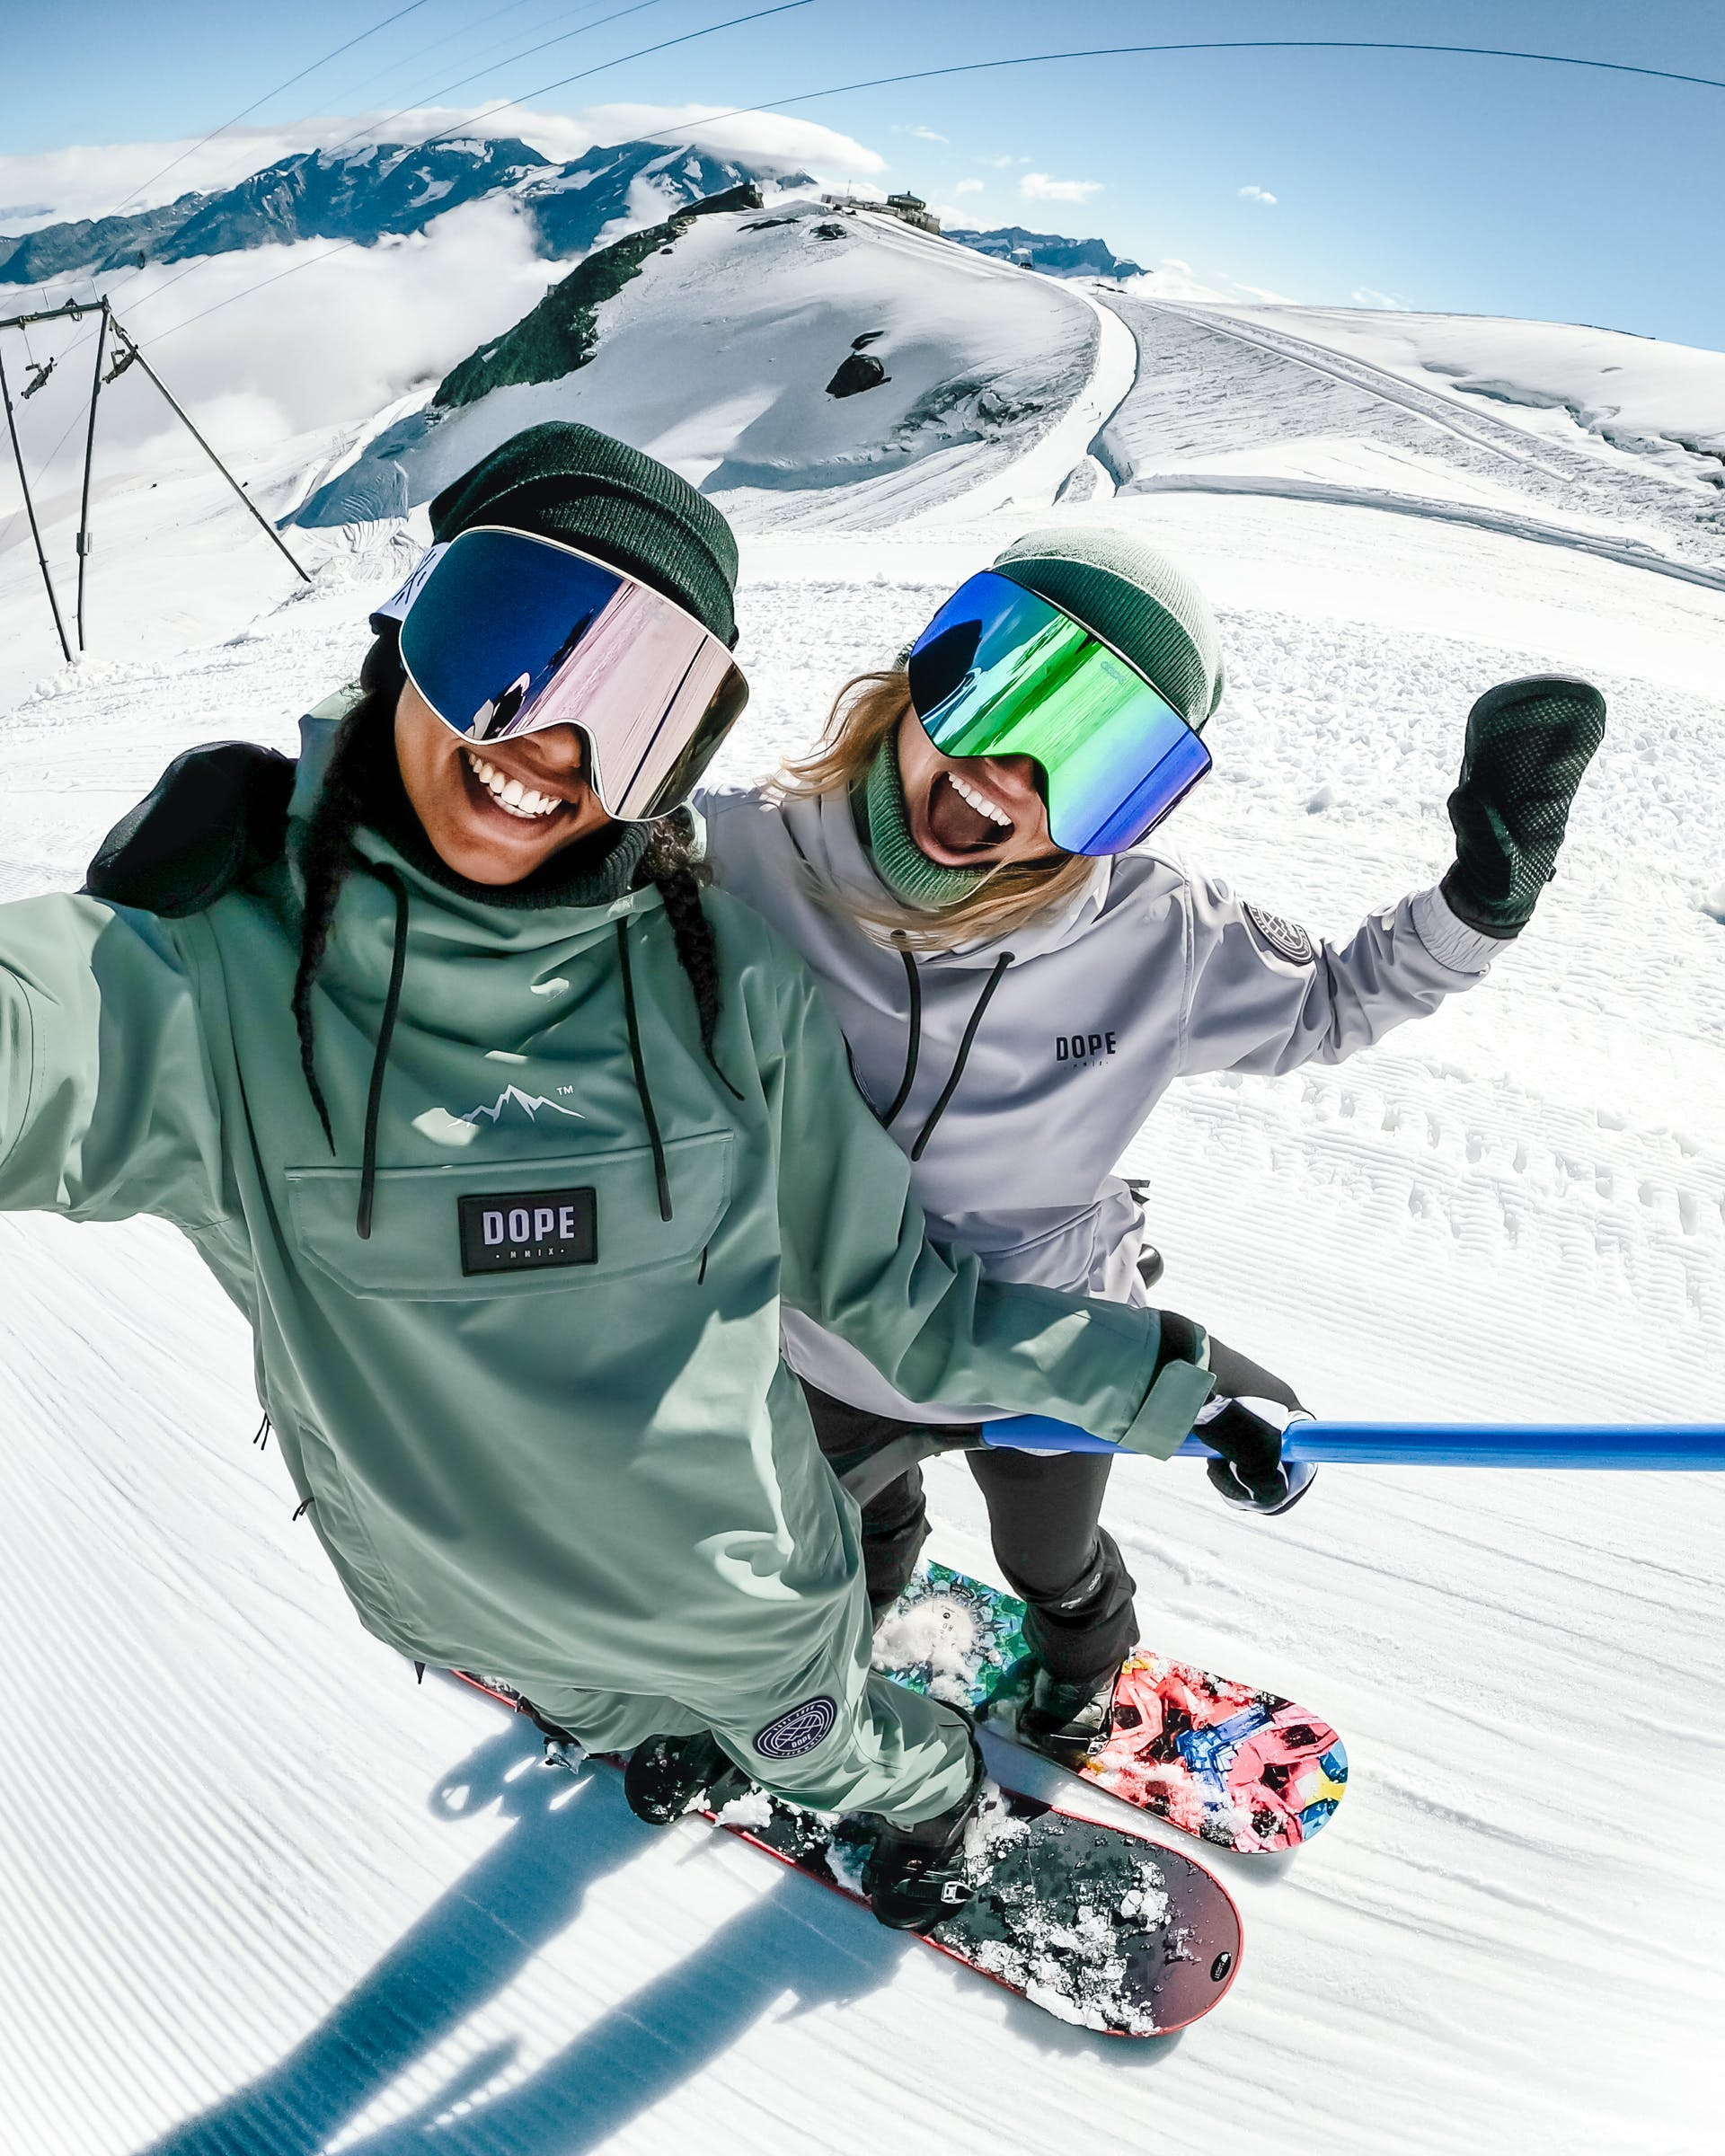 The first known history of the snowboard